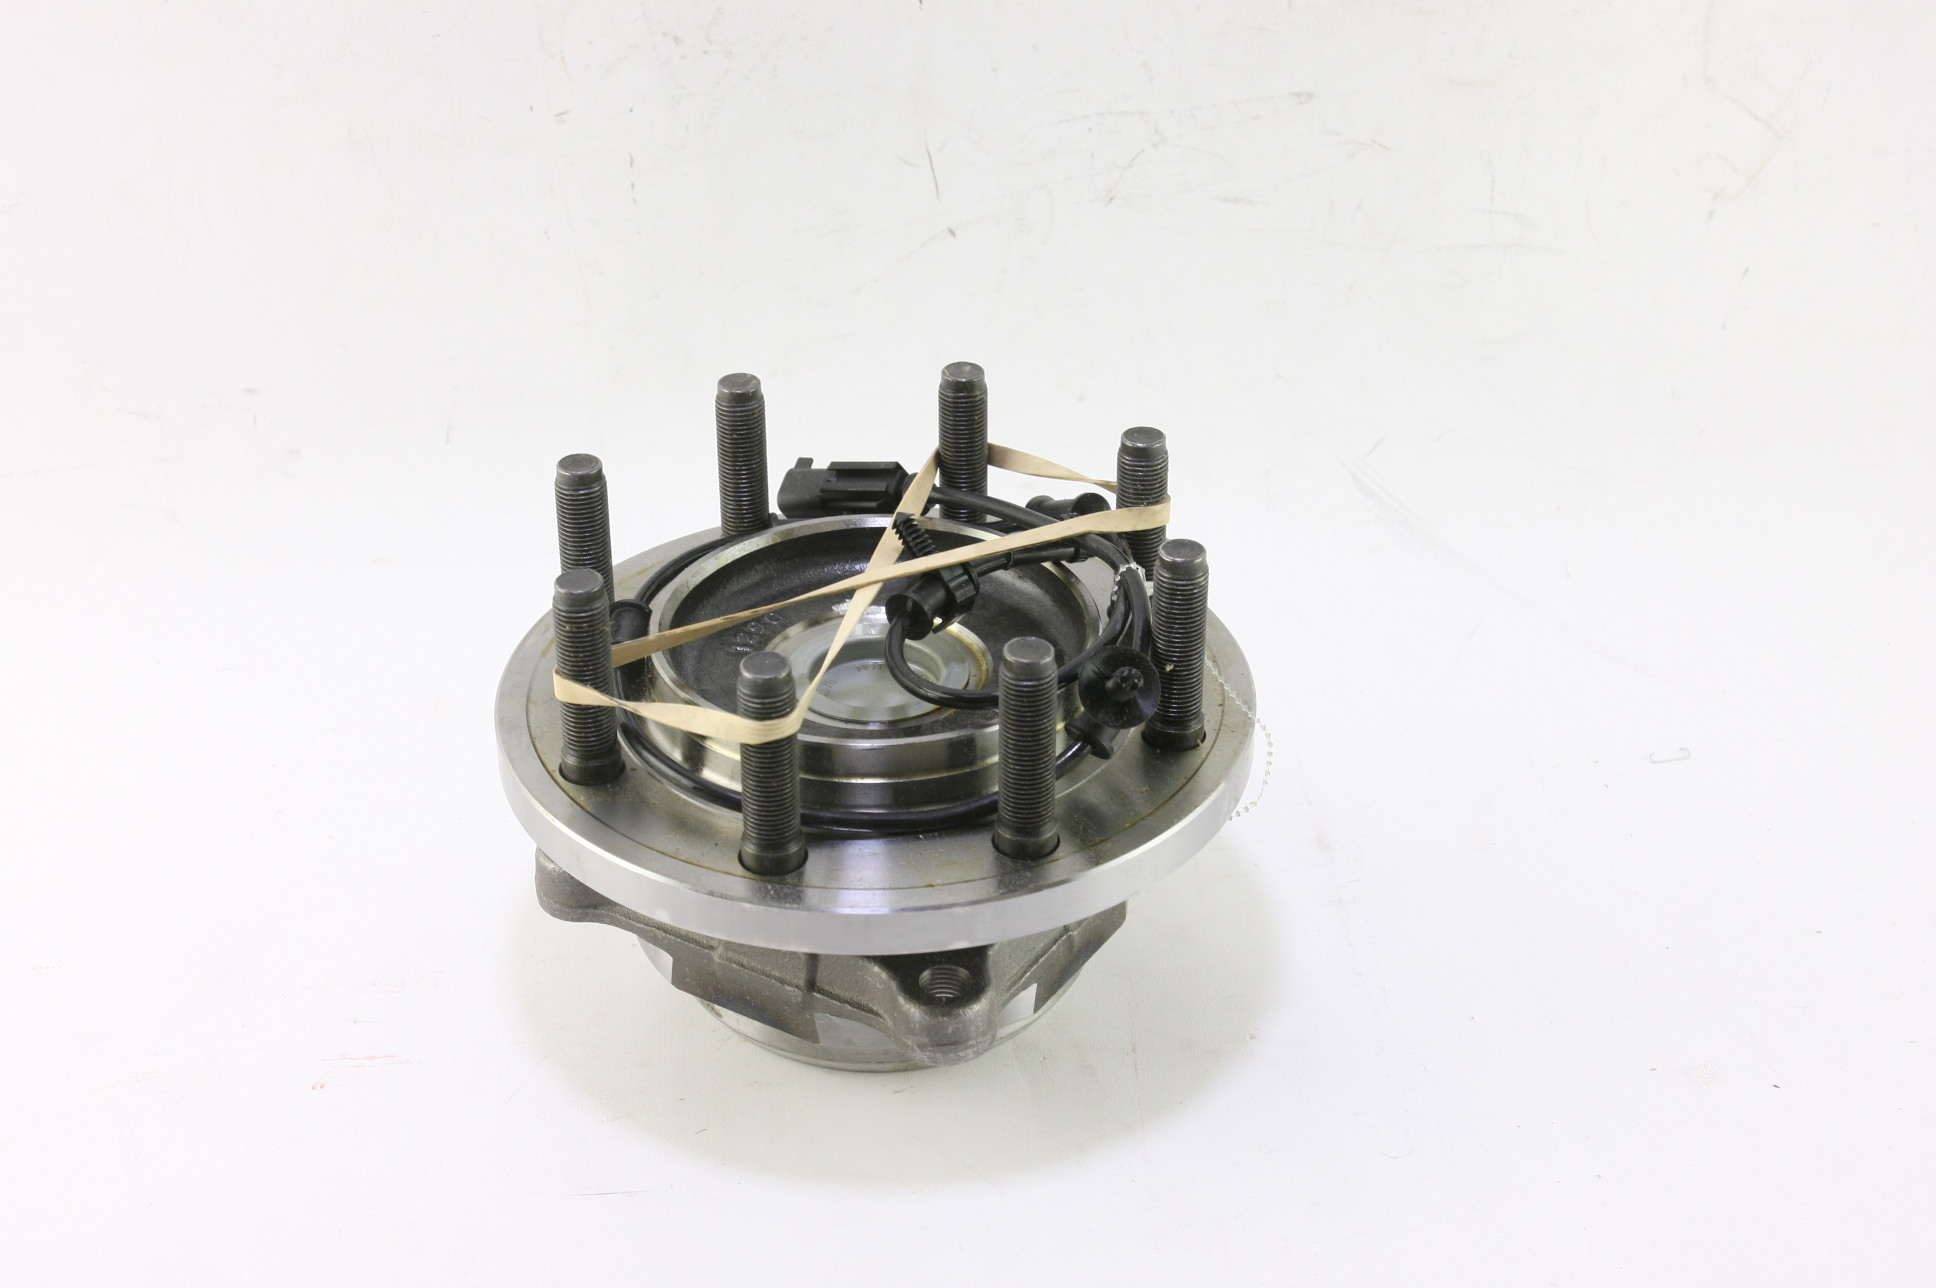 **** New Mopar OEM 52122186AB Disc Brake Hub and Bearing Fast Free Shipping - image 1